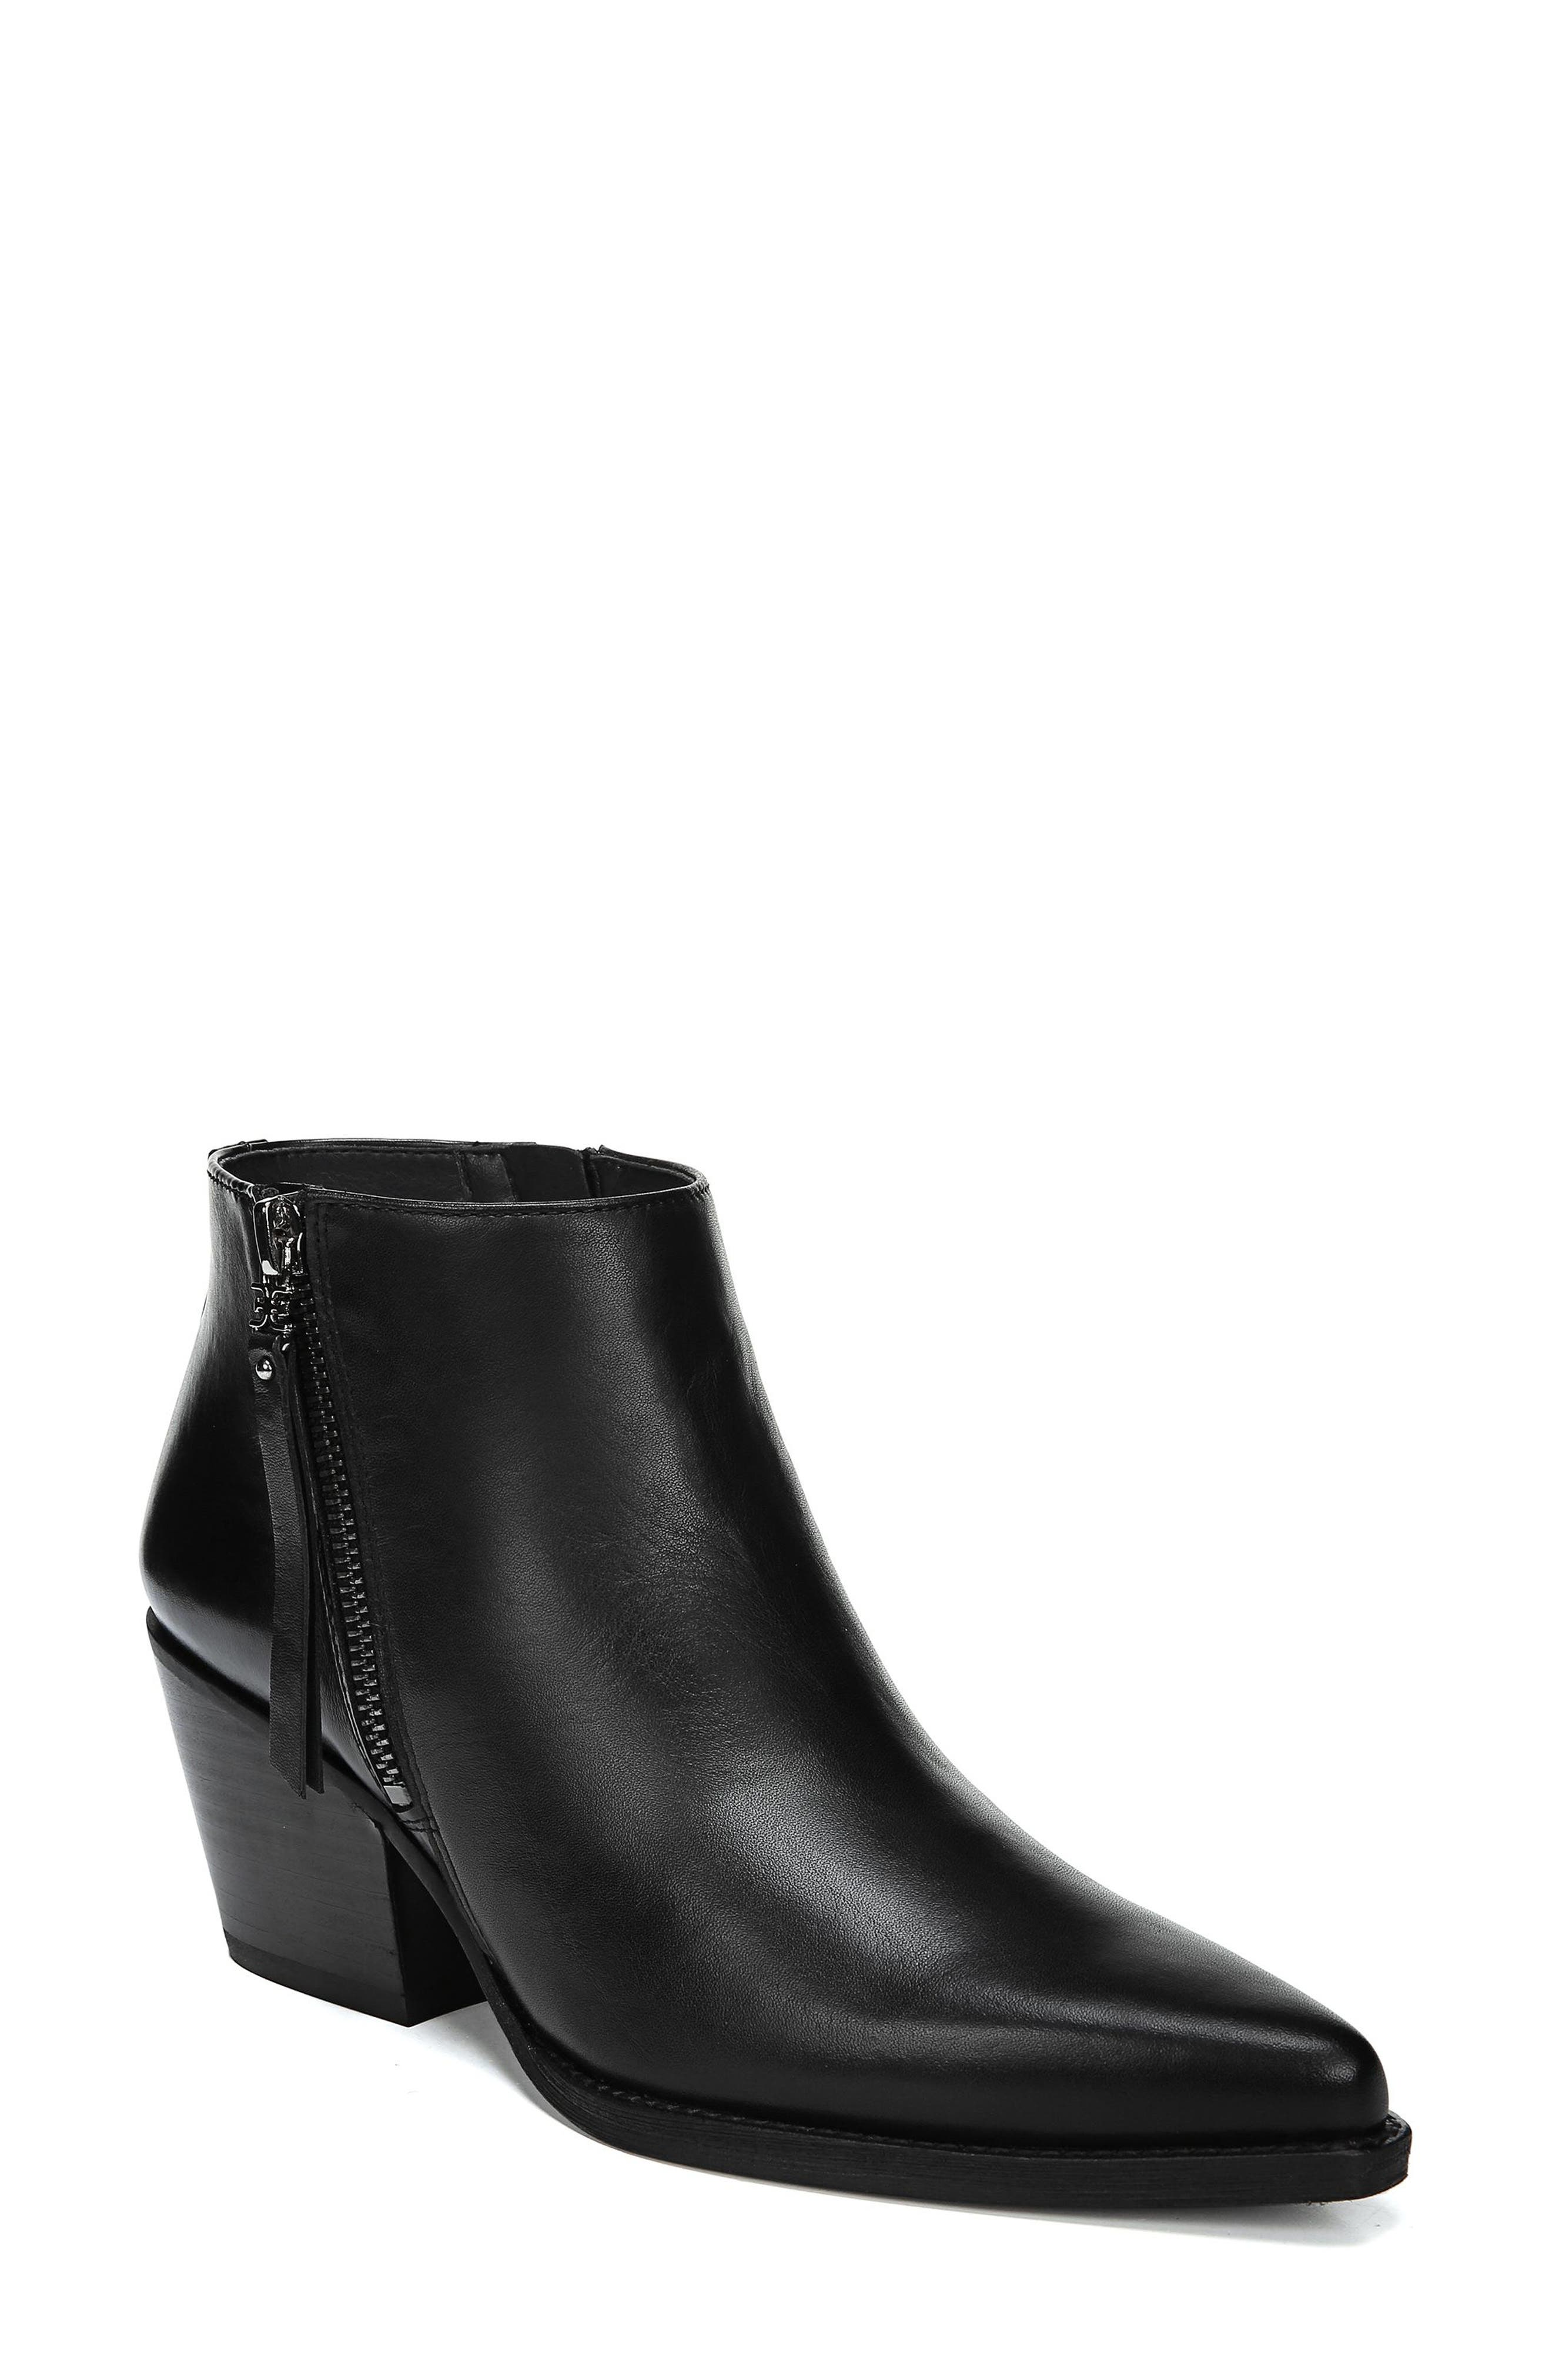 Walden Bootie,                             Main thumbnail 1, color,                             BLACK LEATHER